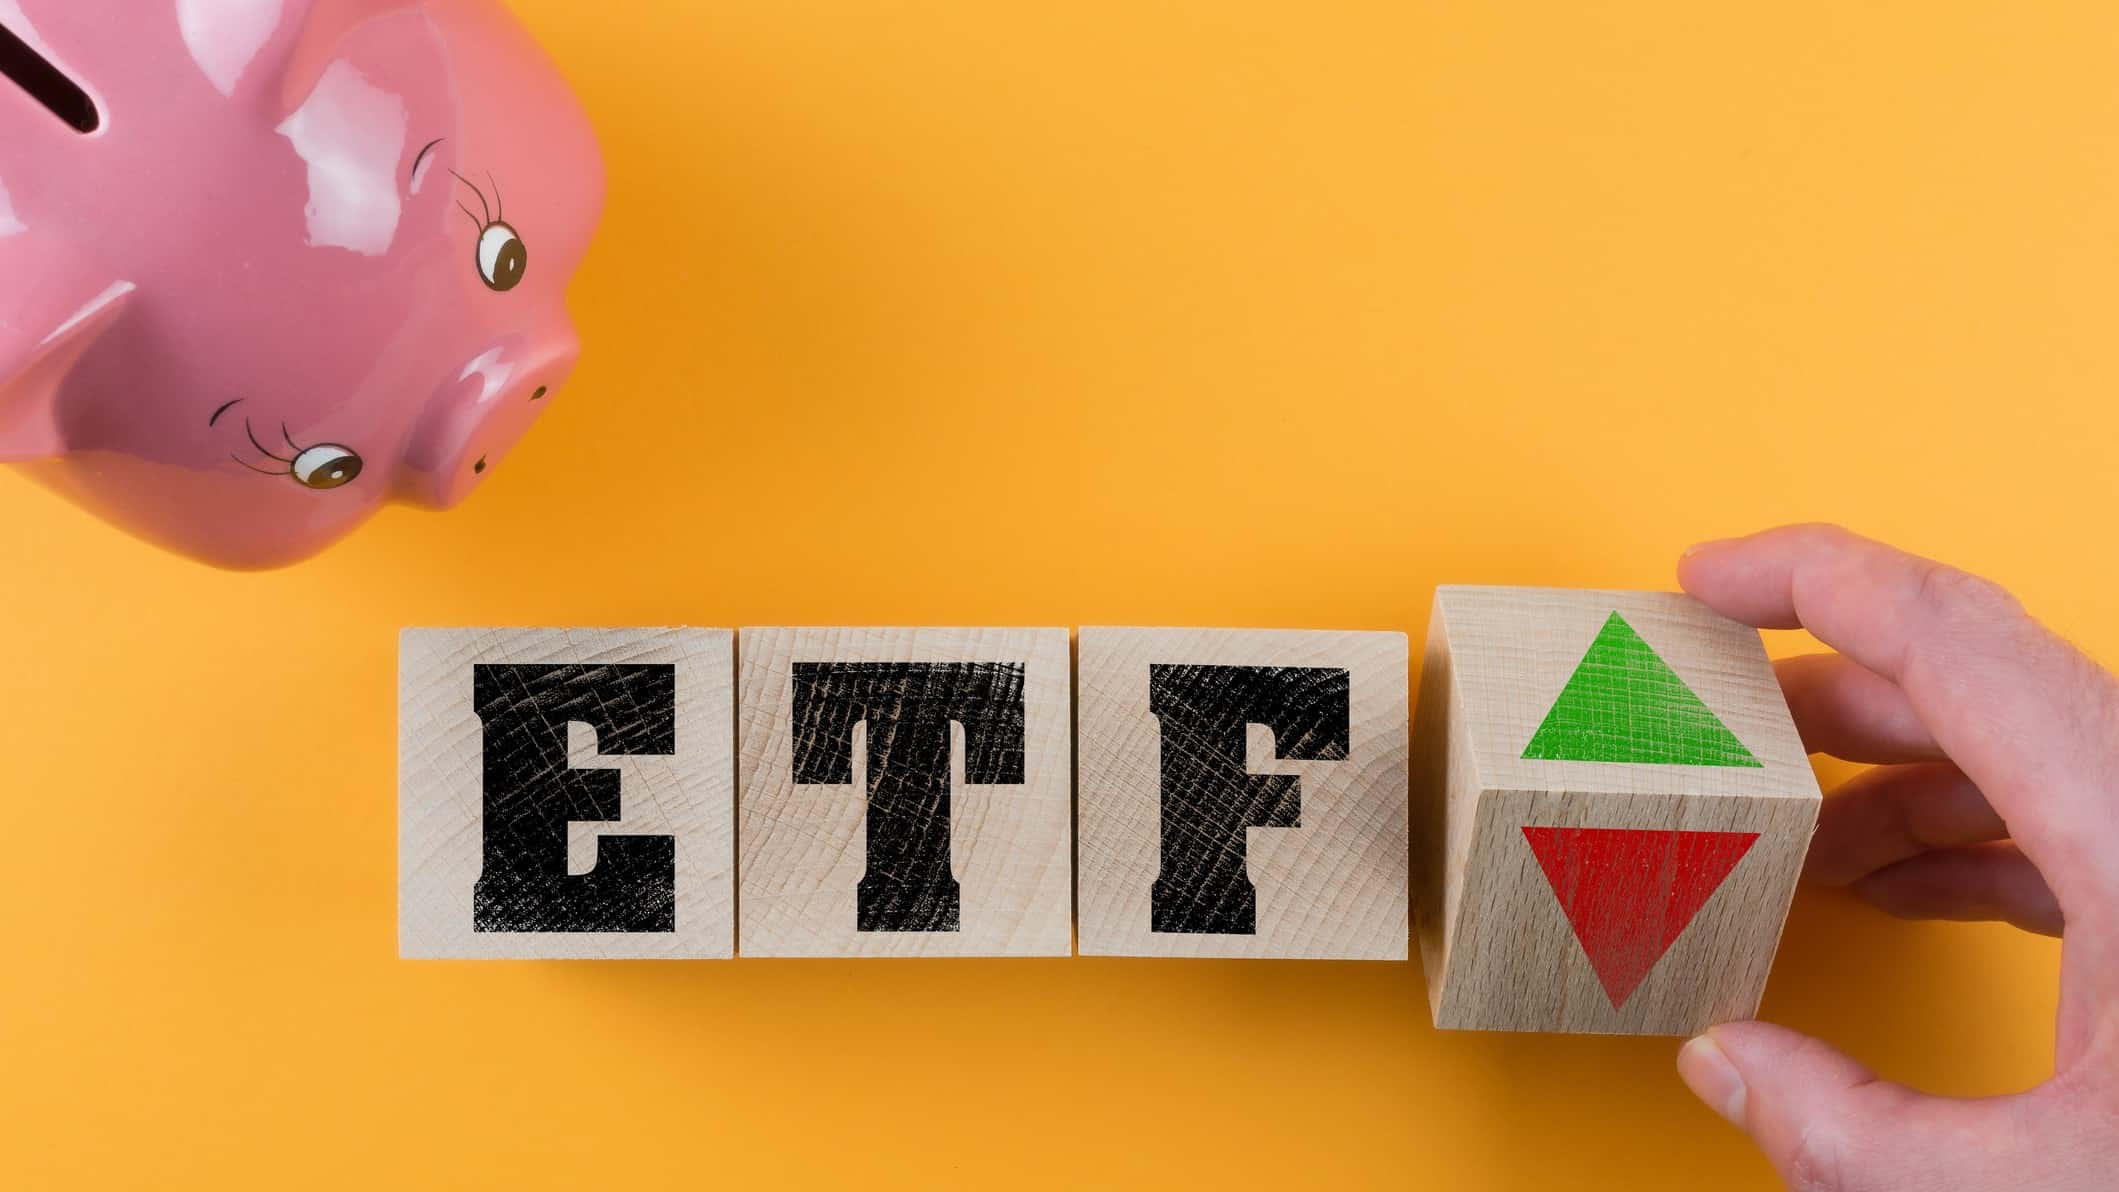 Block letters 'ETF' on yellow/orange background with pink piggy bank